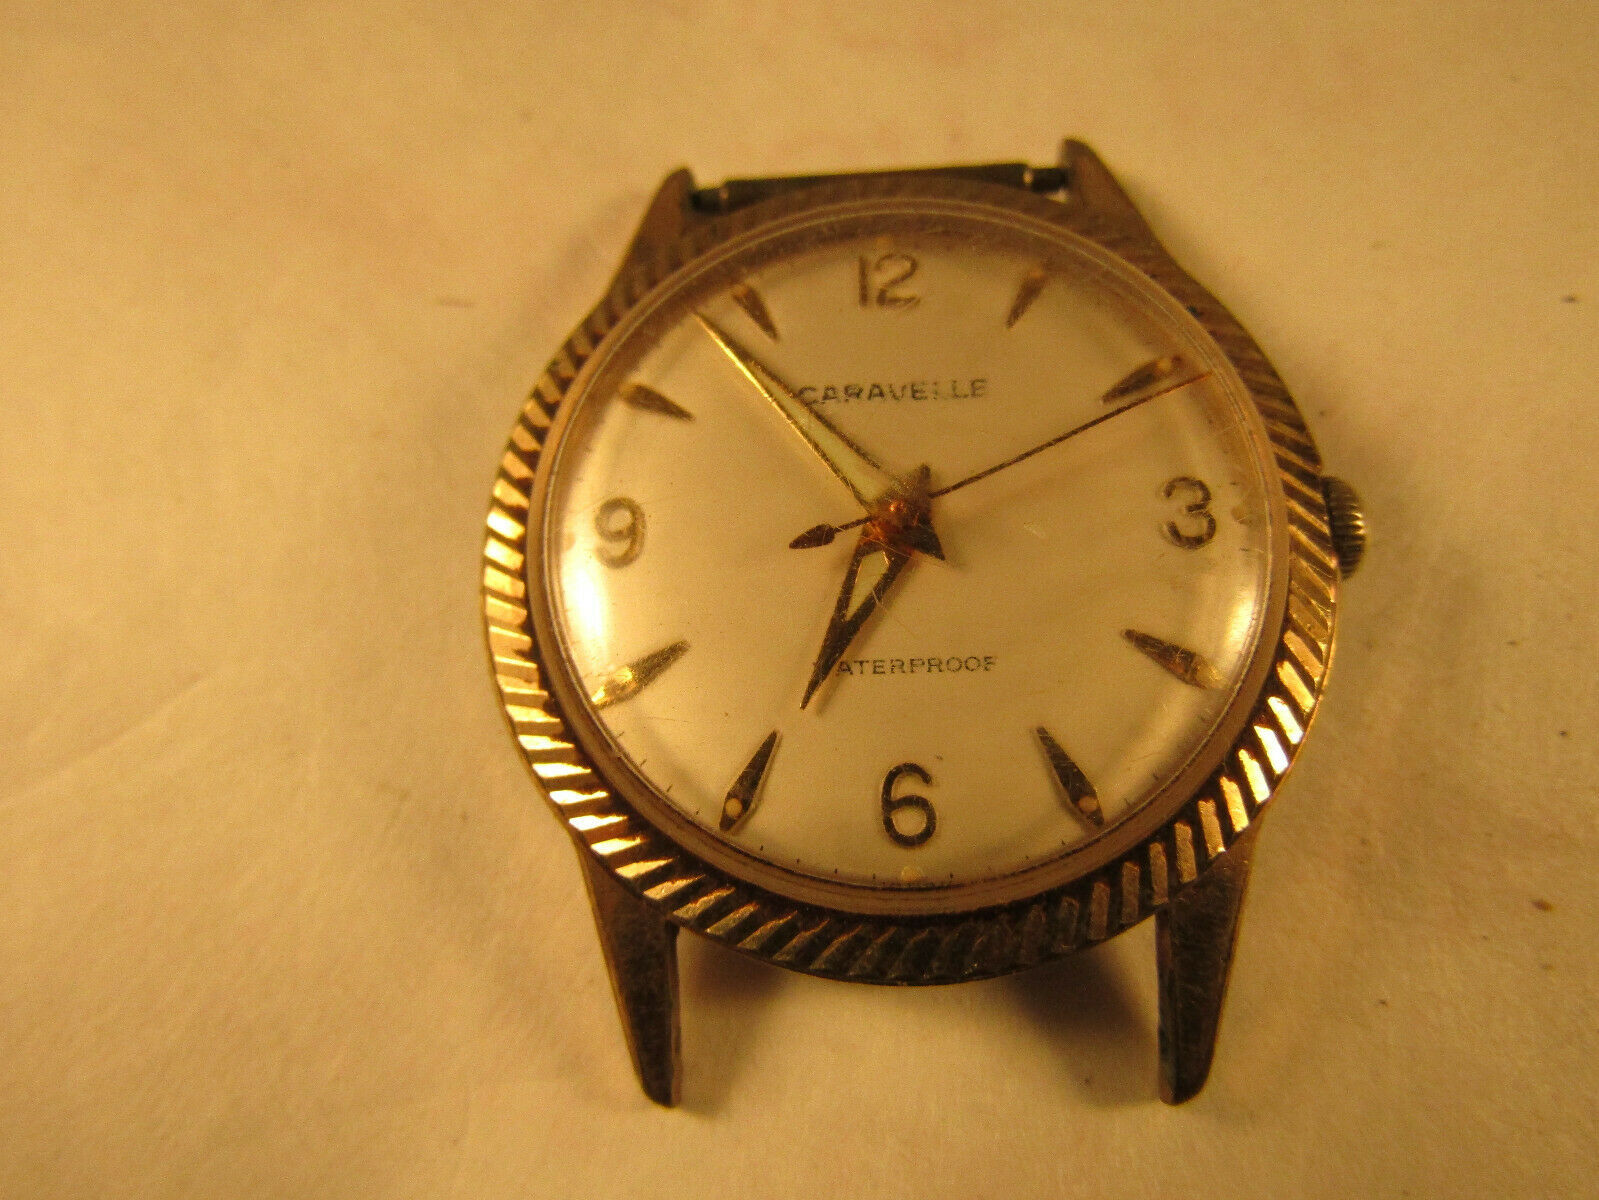 Primary image for VINTAGE 1966 CARAVELLE FLUTED BEZEL 17 JEWEL WATCH RUNS FOR REPAIR OR PARTS